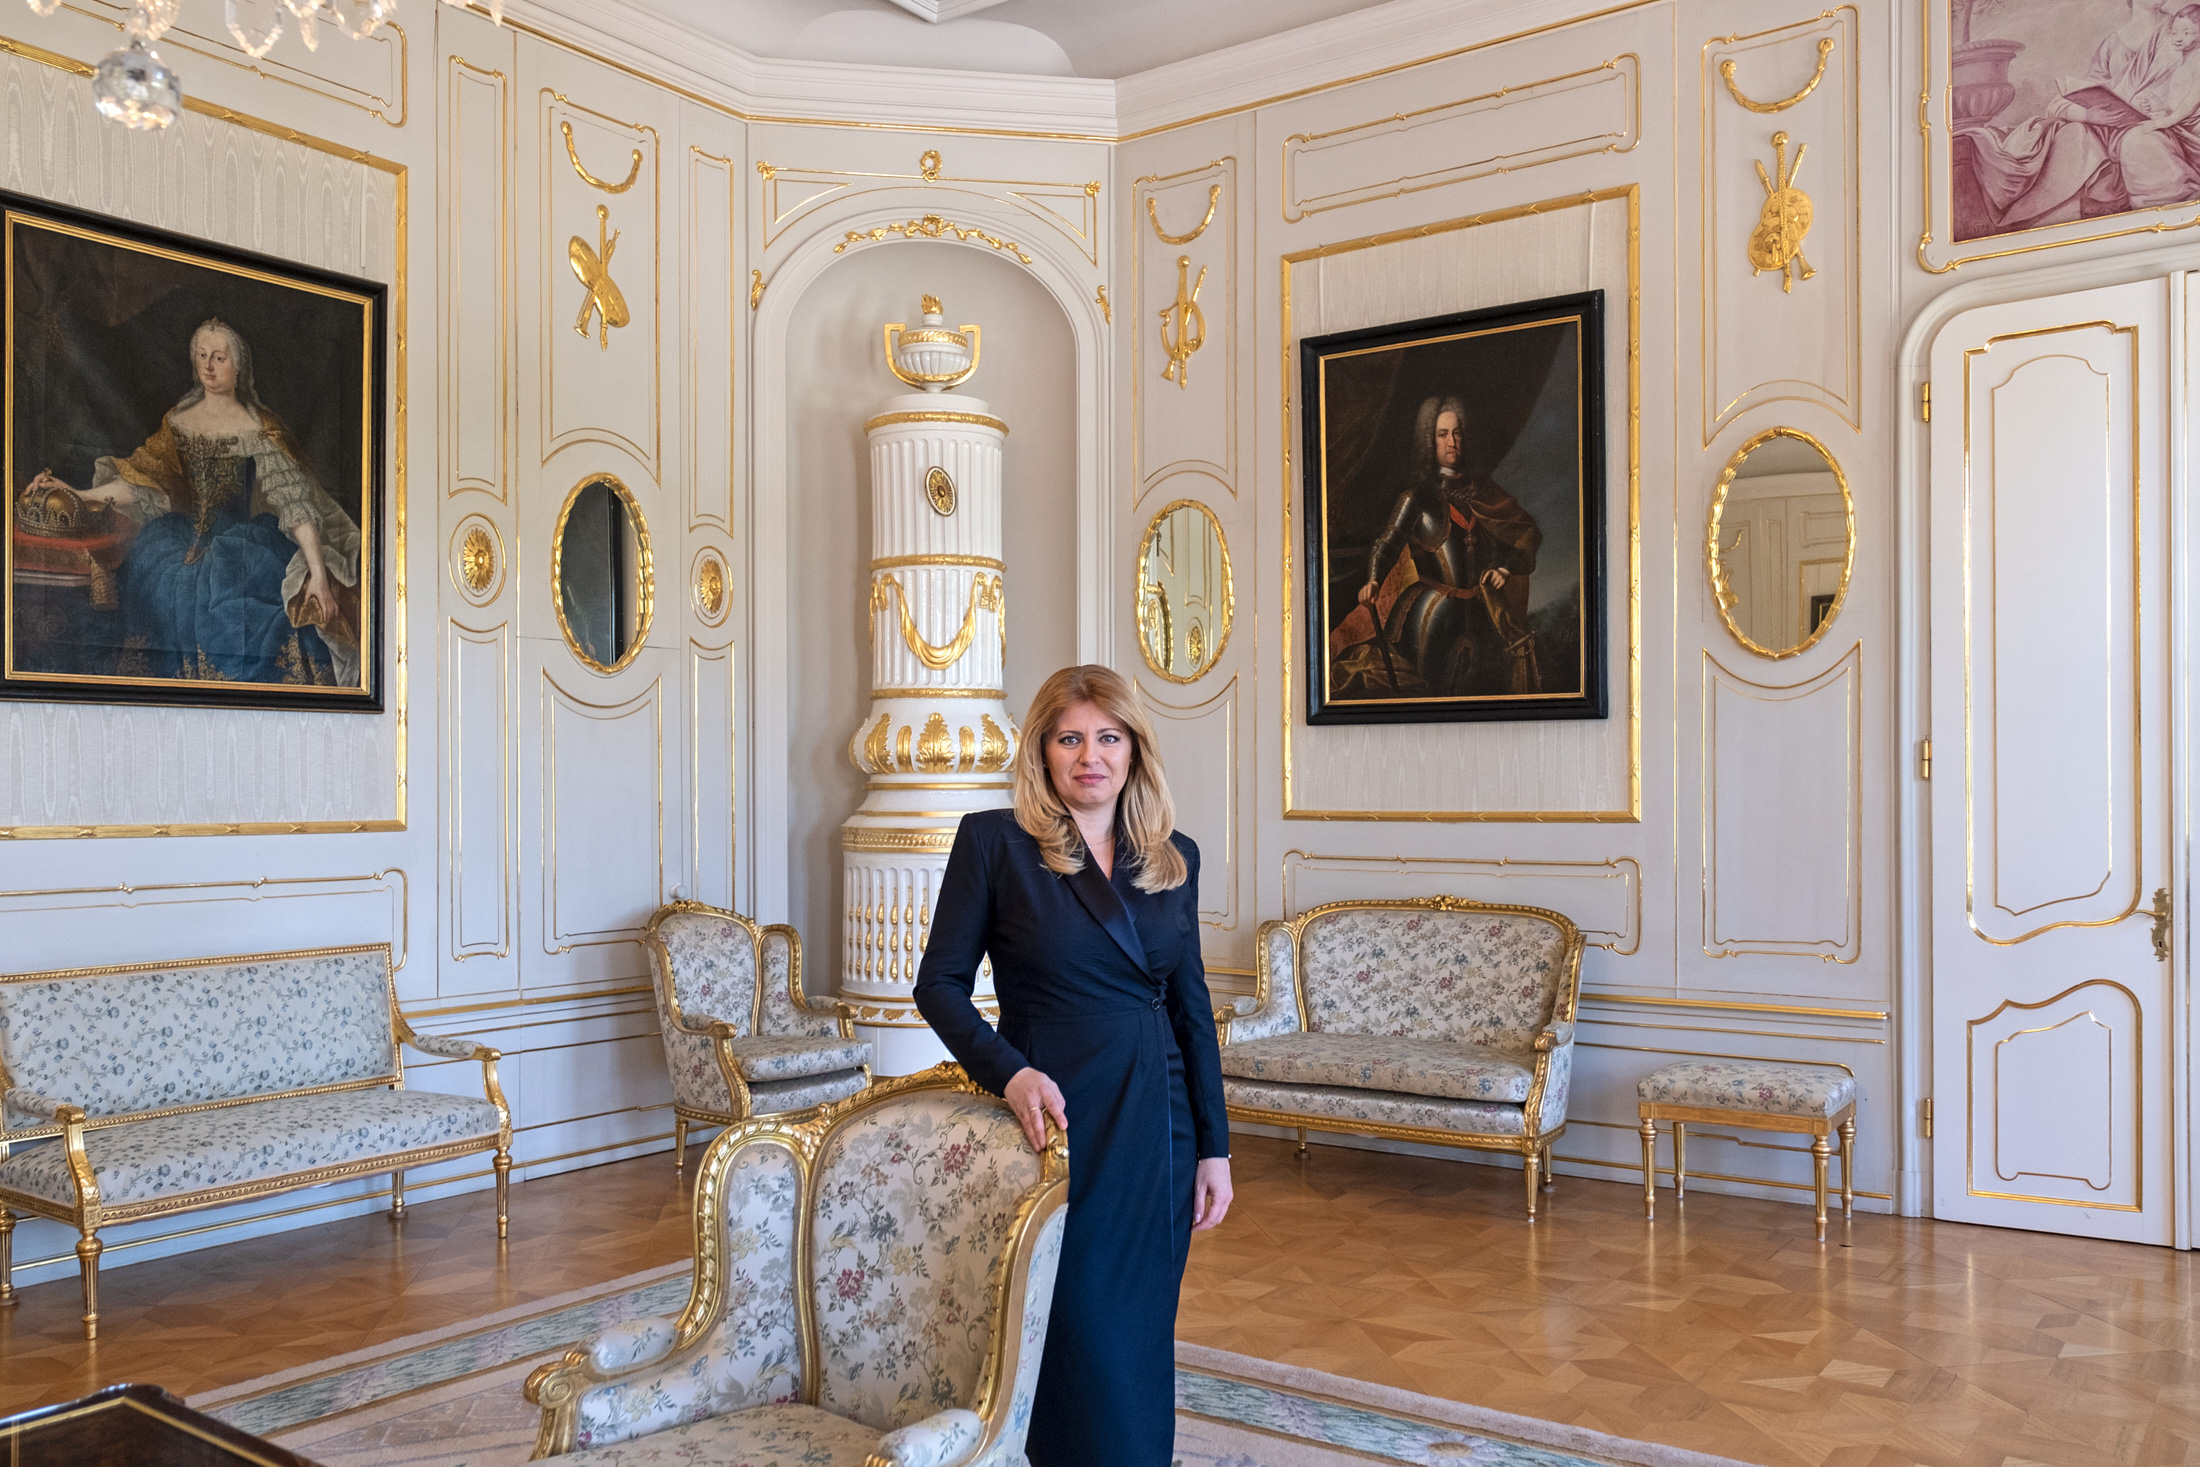 President Zuzana Čaputová stands in the Grassalkovich Palace, the historic residence of Slovak presidents, on June 23 in Bratislava. One year after Čaputová assumed office, her tenure is widely viewed as highly successful, in part because of her outstanding leadership during the COVID-19 pandemic. She has also earned many plaudits for her eloquent calls for all people, including ethnic minorities, to join together to make much-needed important improvements in education, health care, the environment and the judicial system.